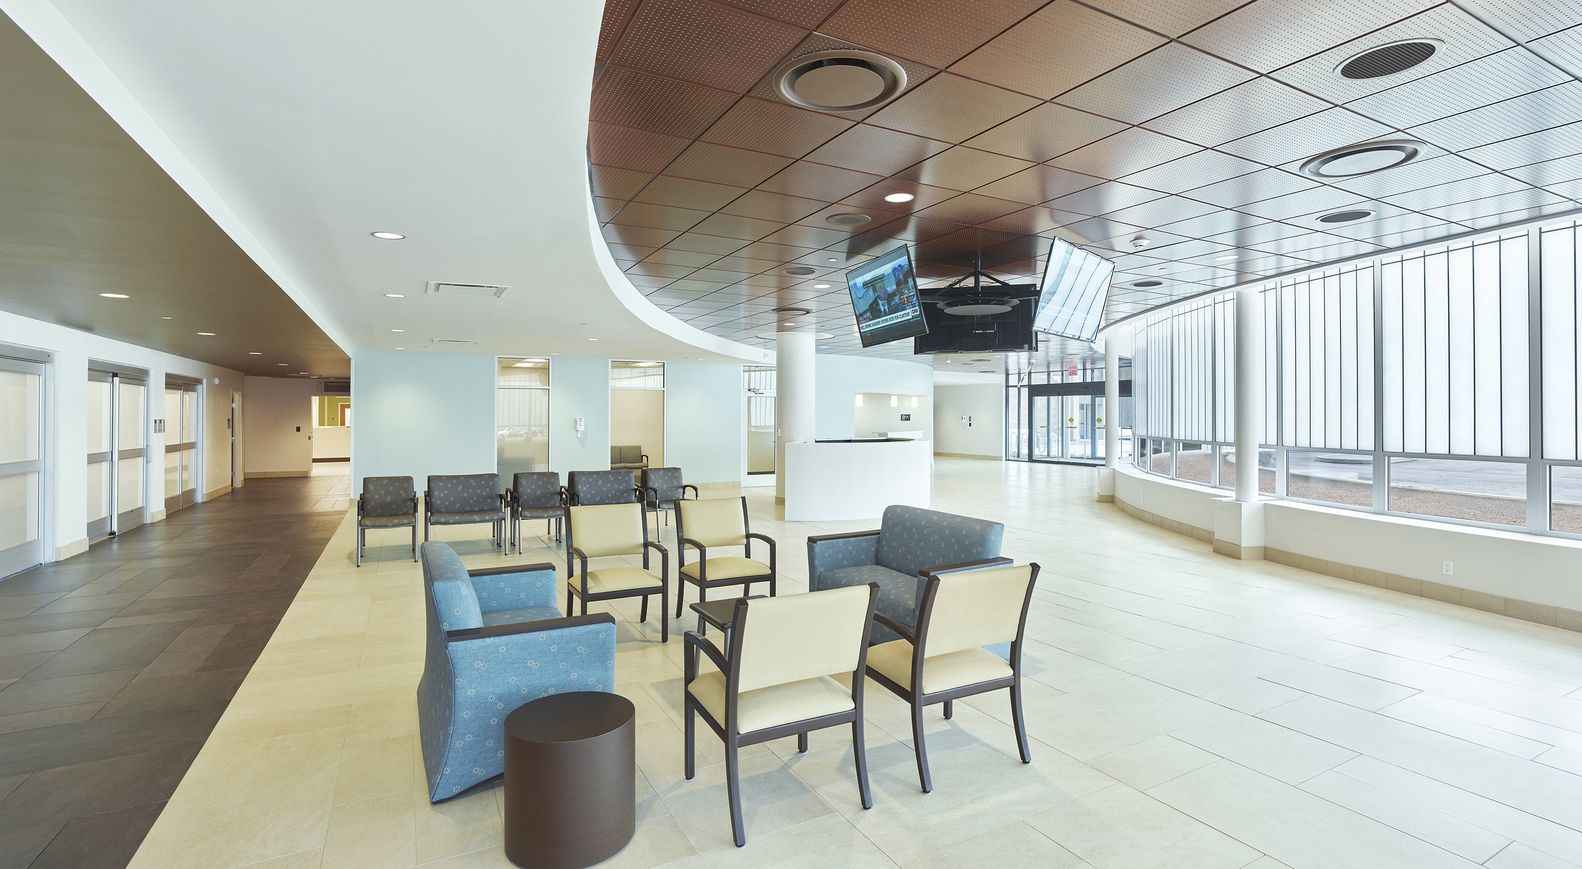 Gallery of methodist south emergency department addition